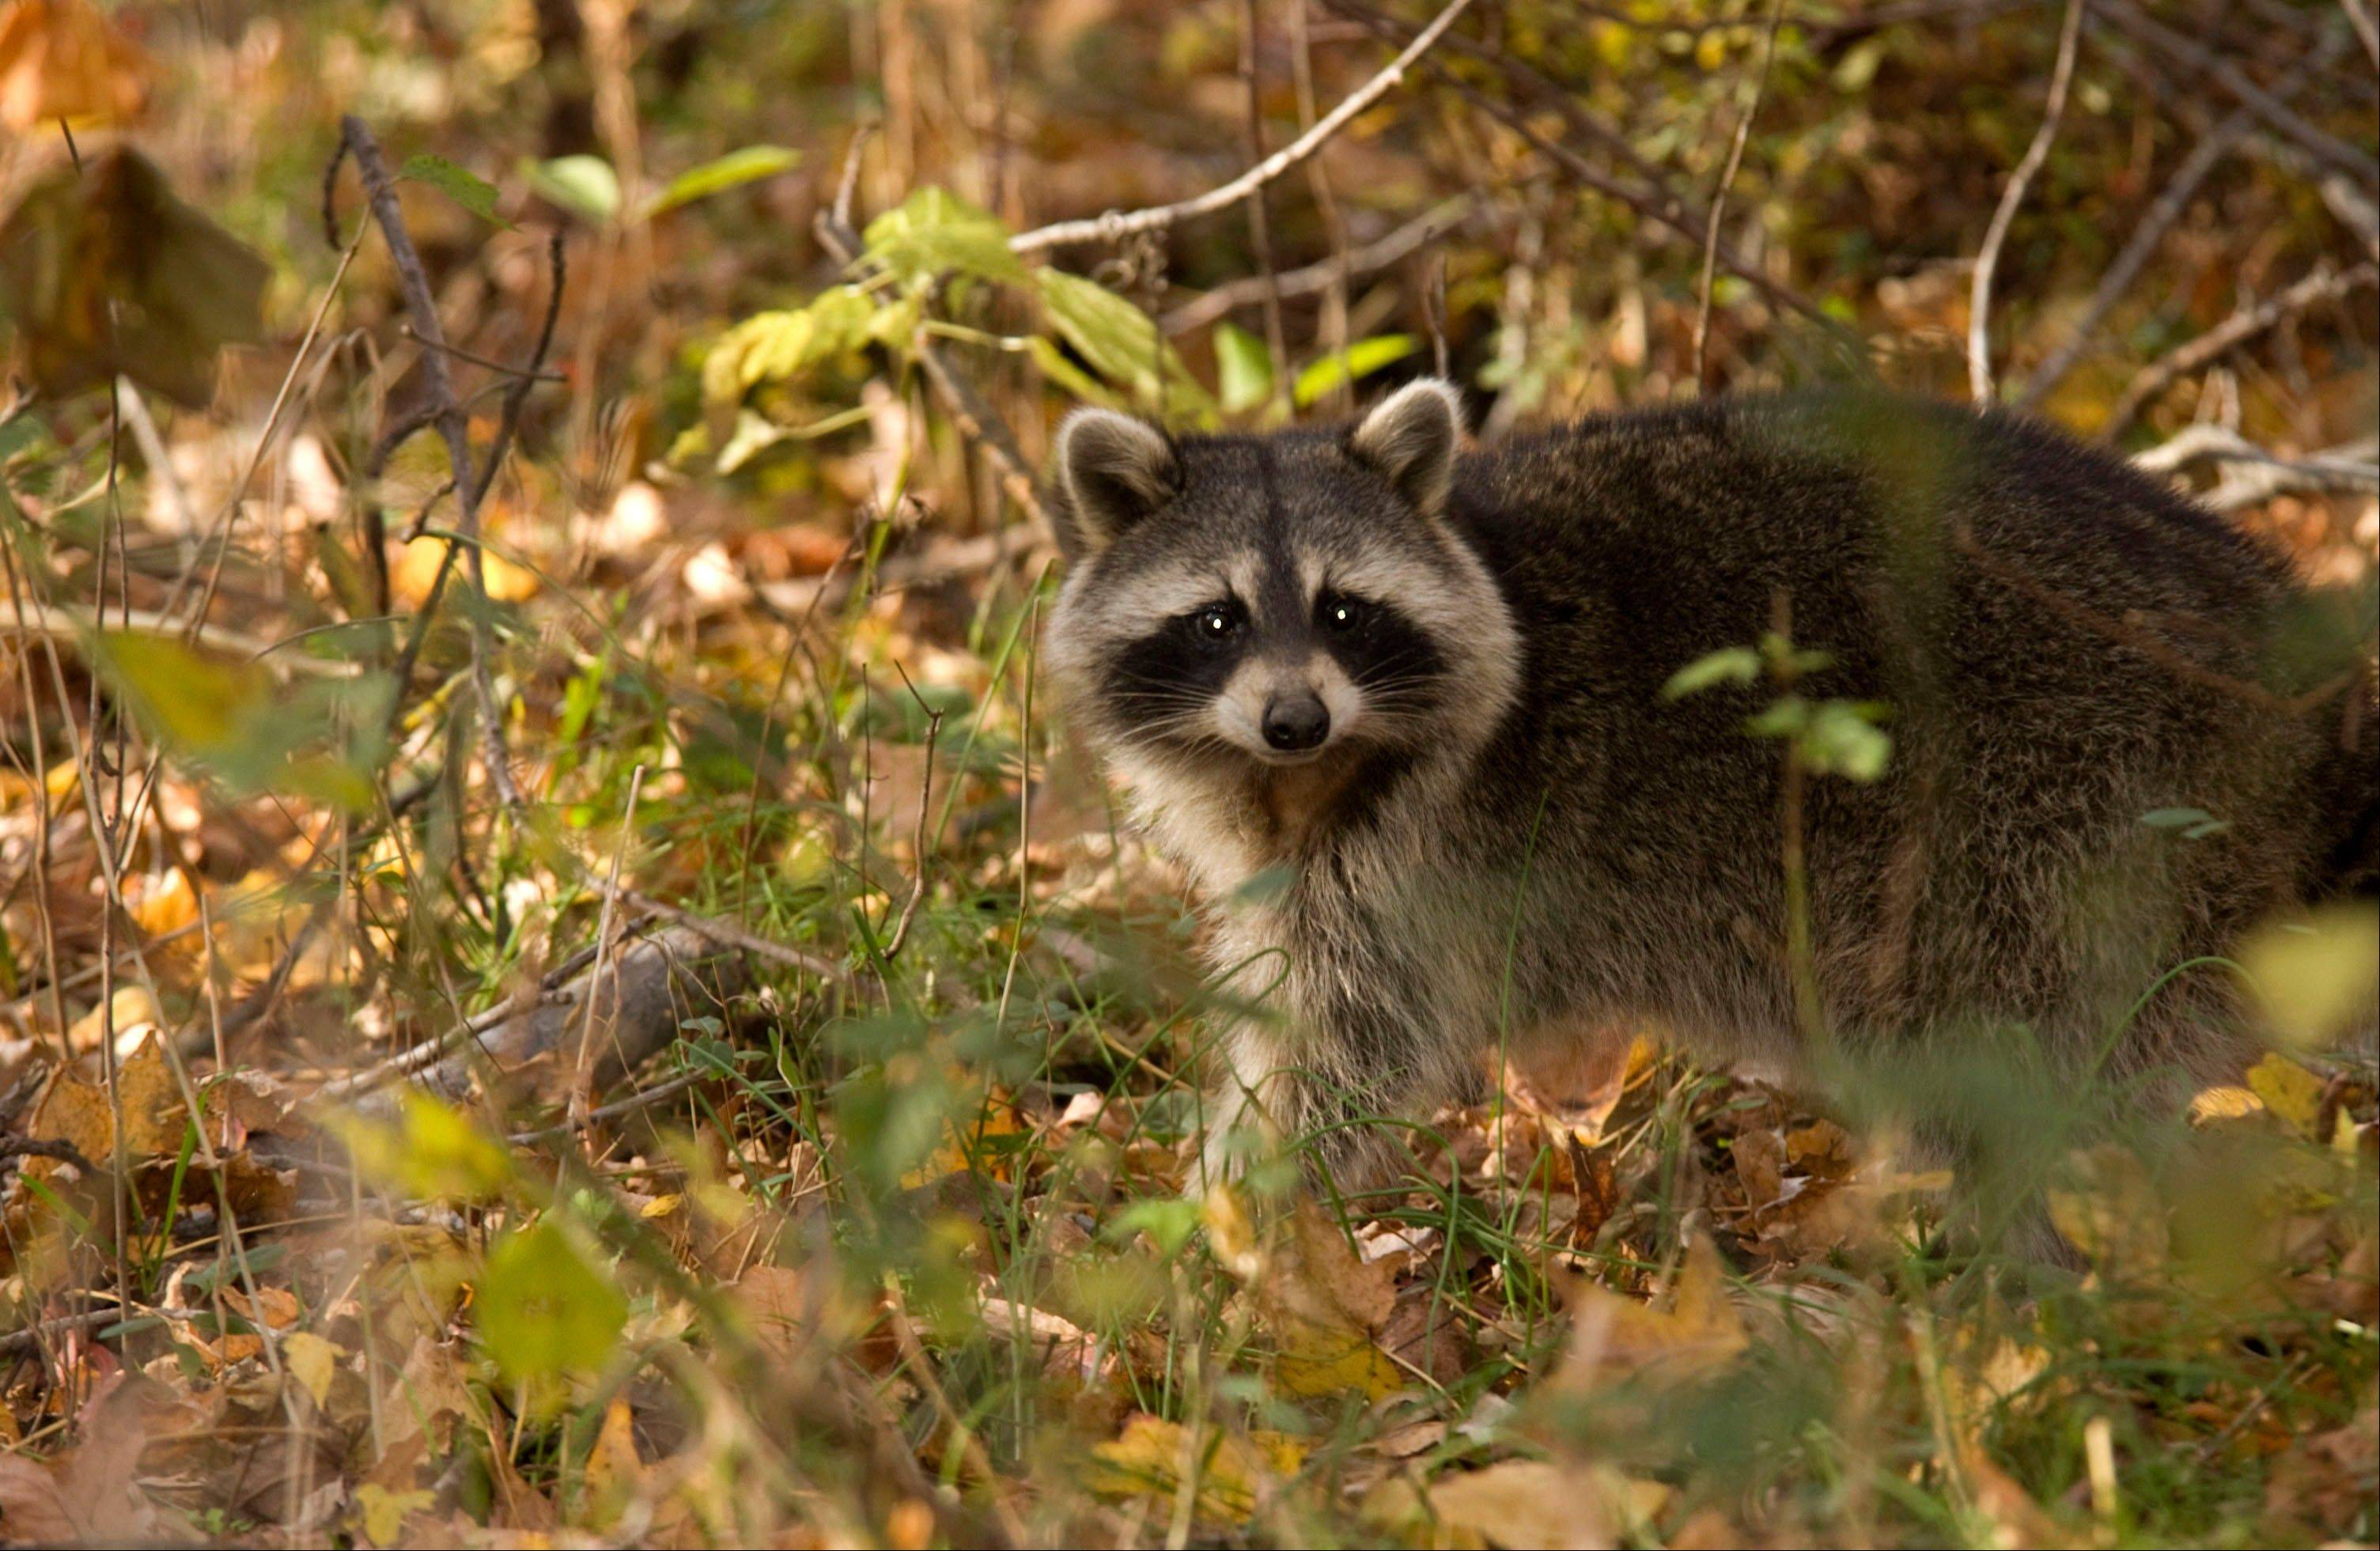 In the United States, most rabies cases before 1960 were in domestic animals, but today more than 90 percent of all animal cases reported annually to the U.S. Centers for Disease Control occur in wildlife, most frequently in raccoons, bats, skunks and foxes.